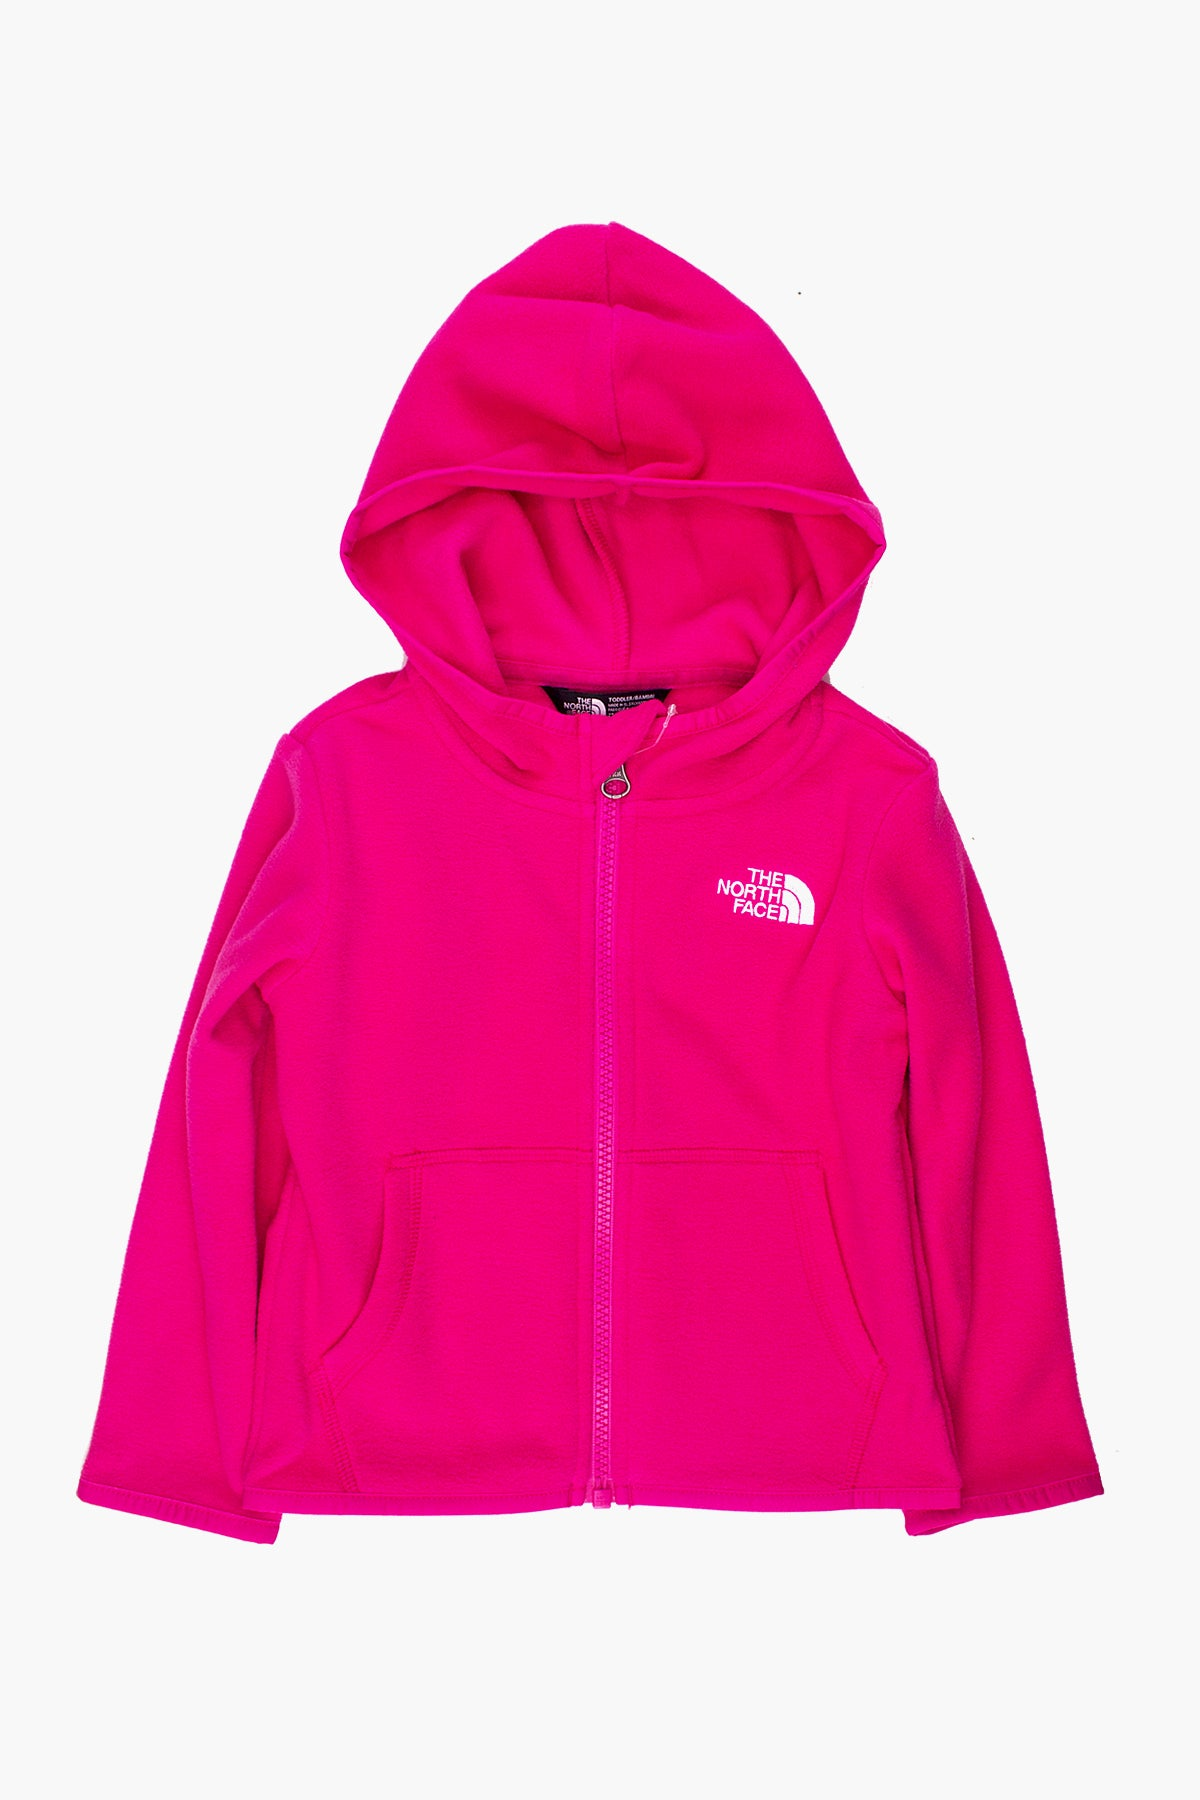 The North Face Glacier Full Zip Girls Hoodie - Mr. Pink